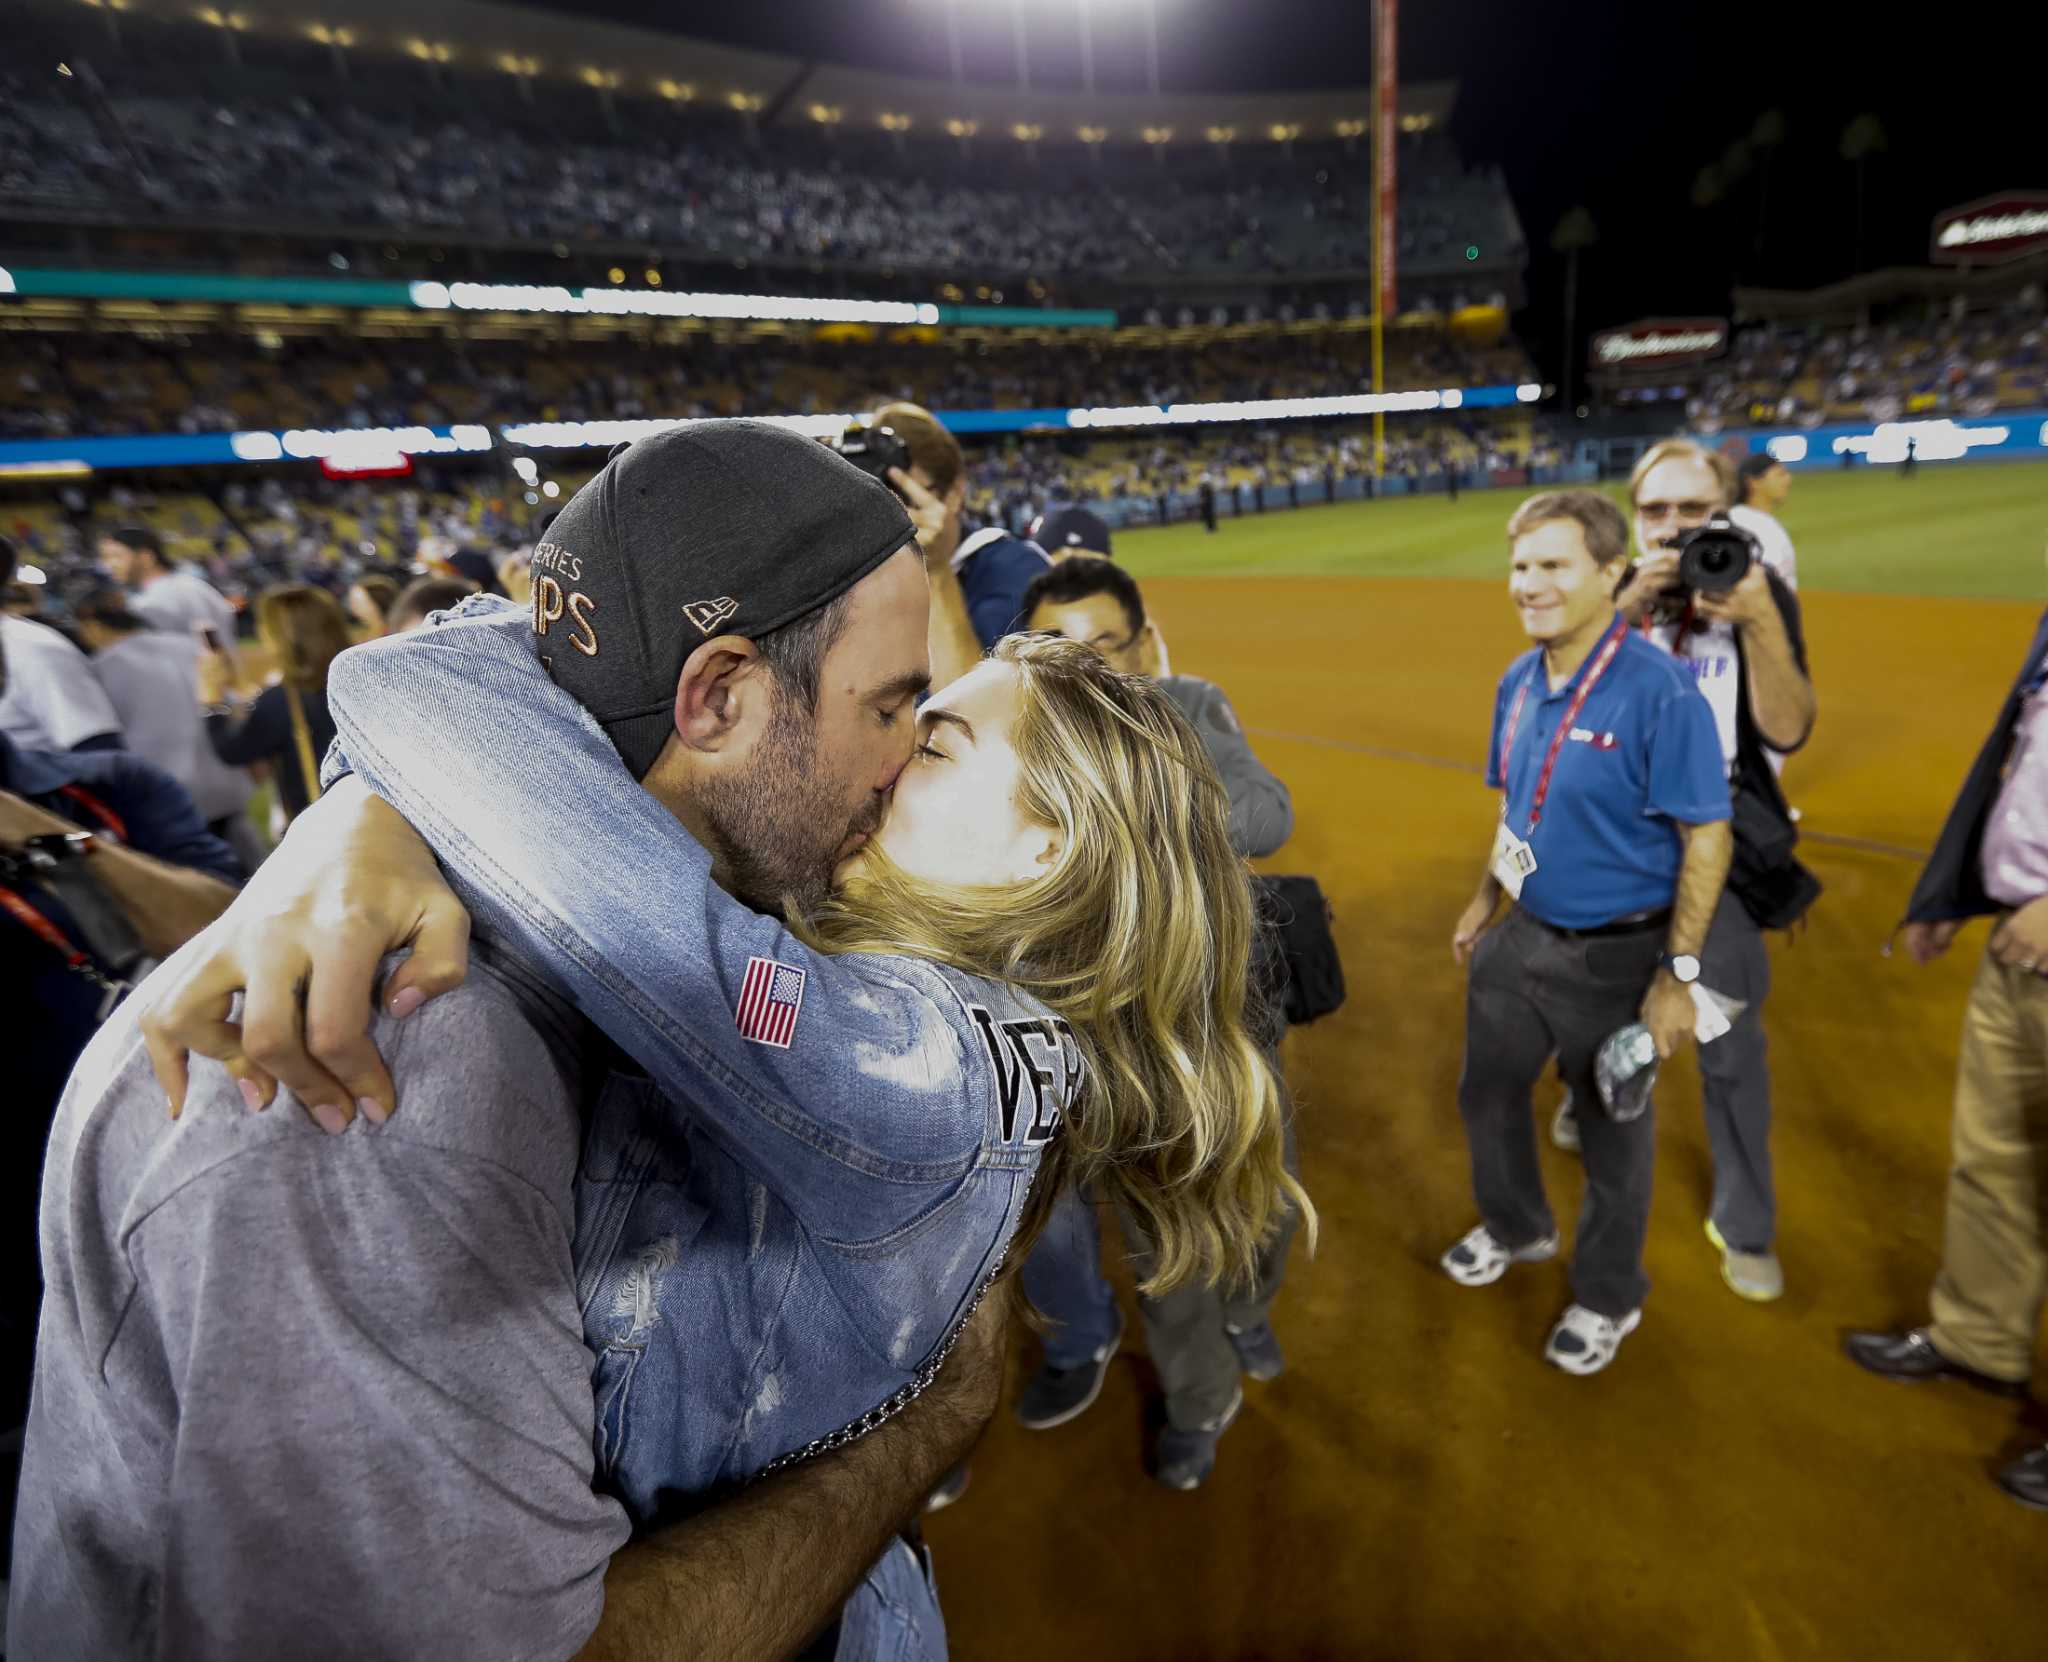 Houston pitchers dating kate upton